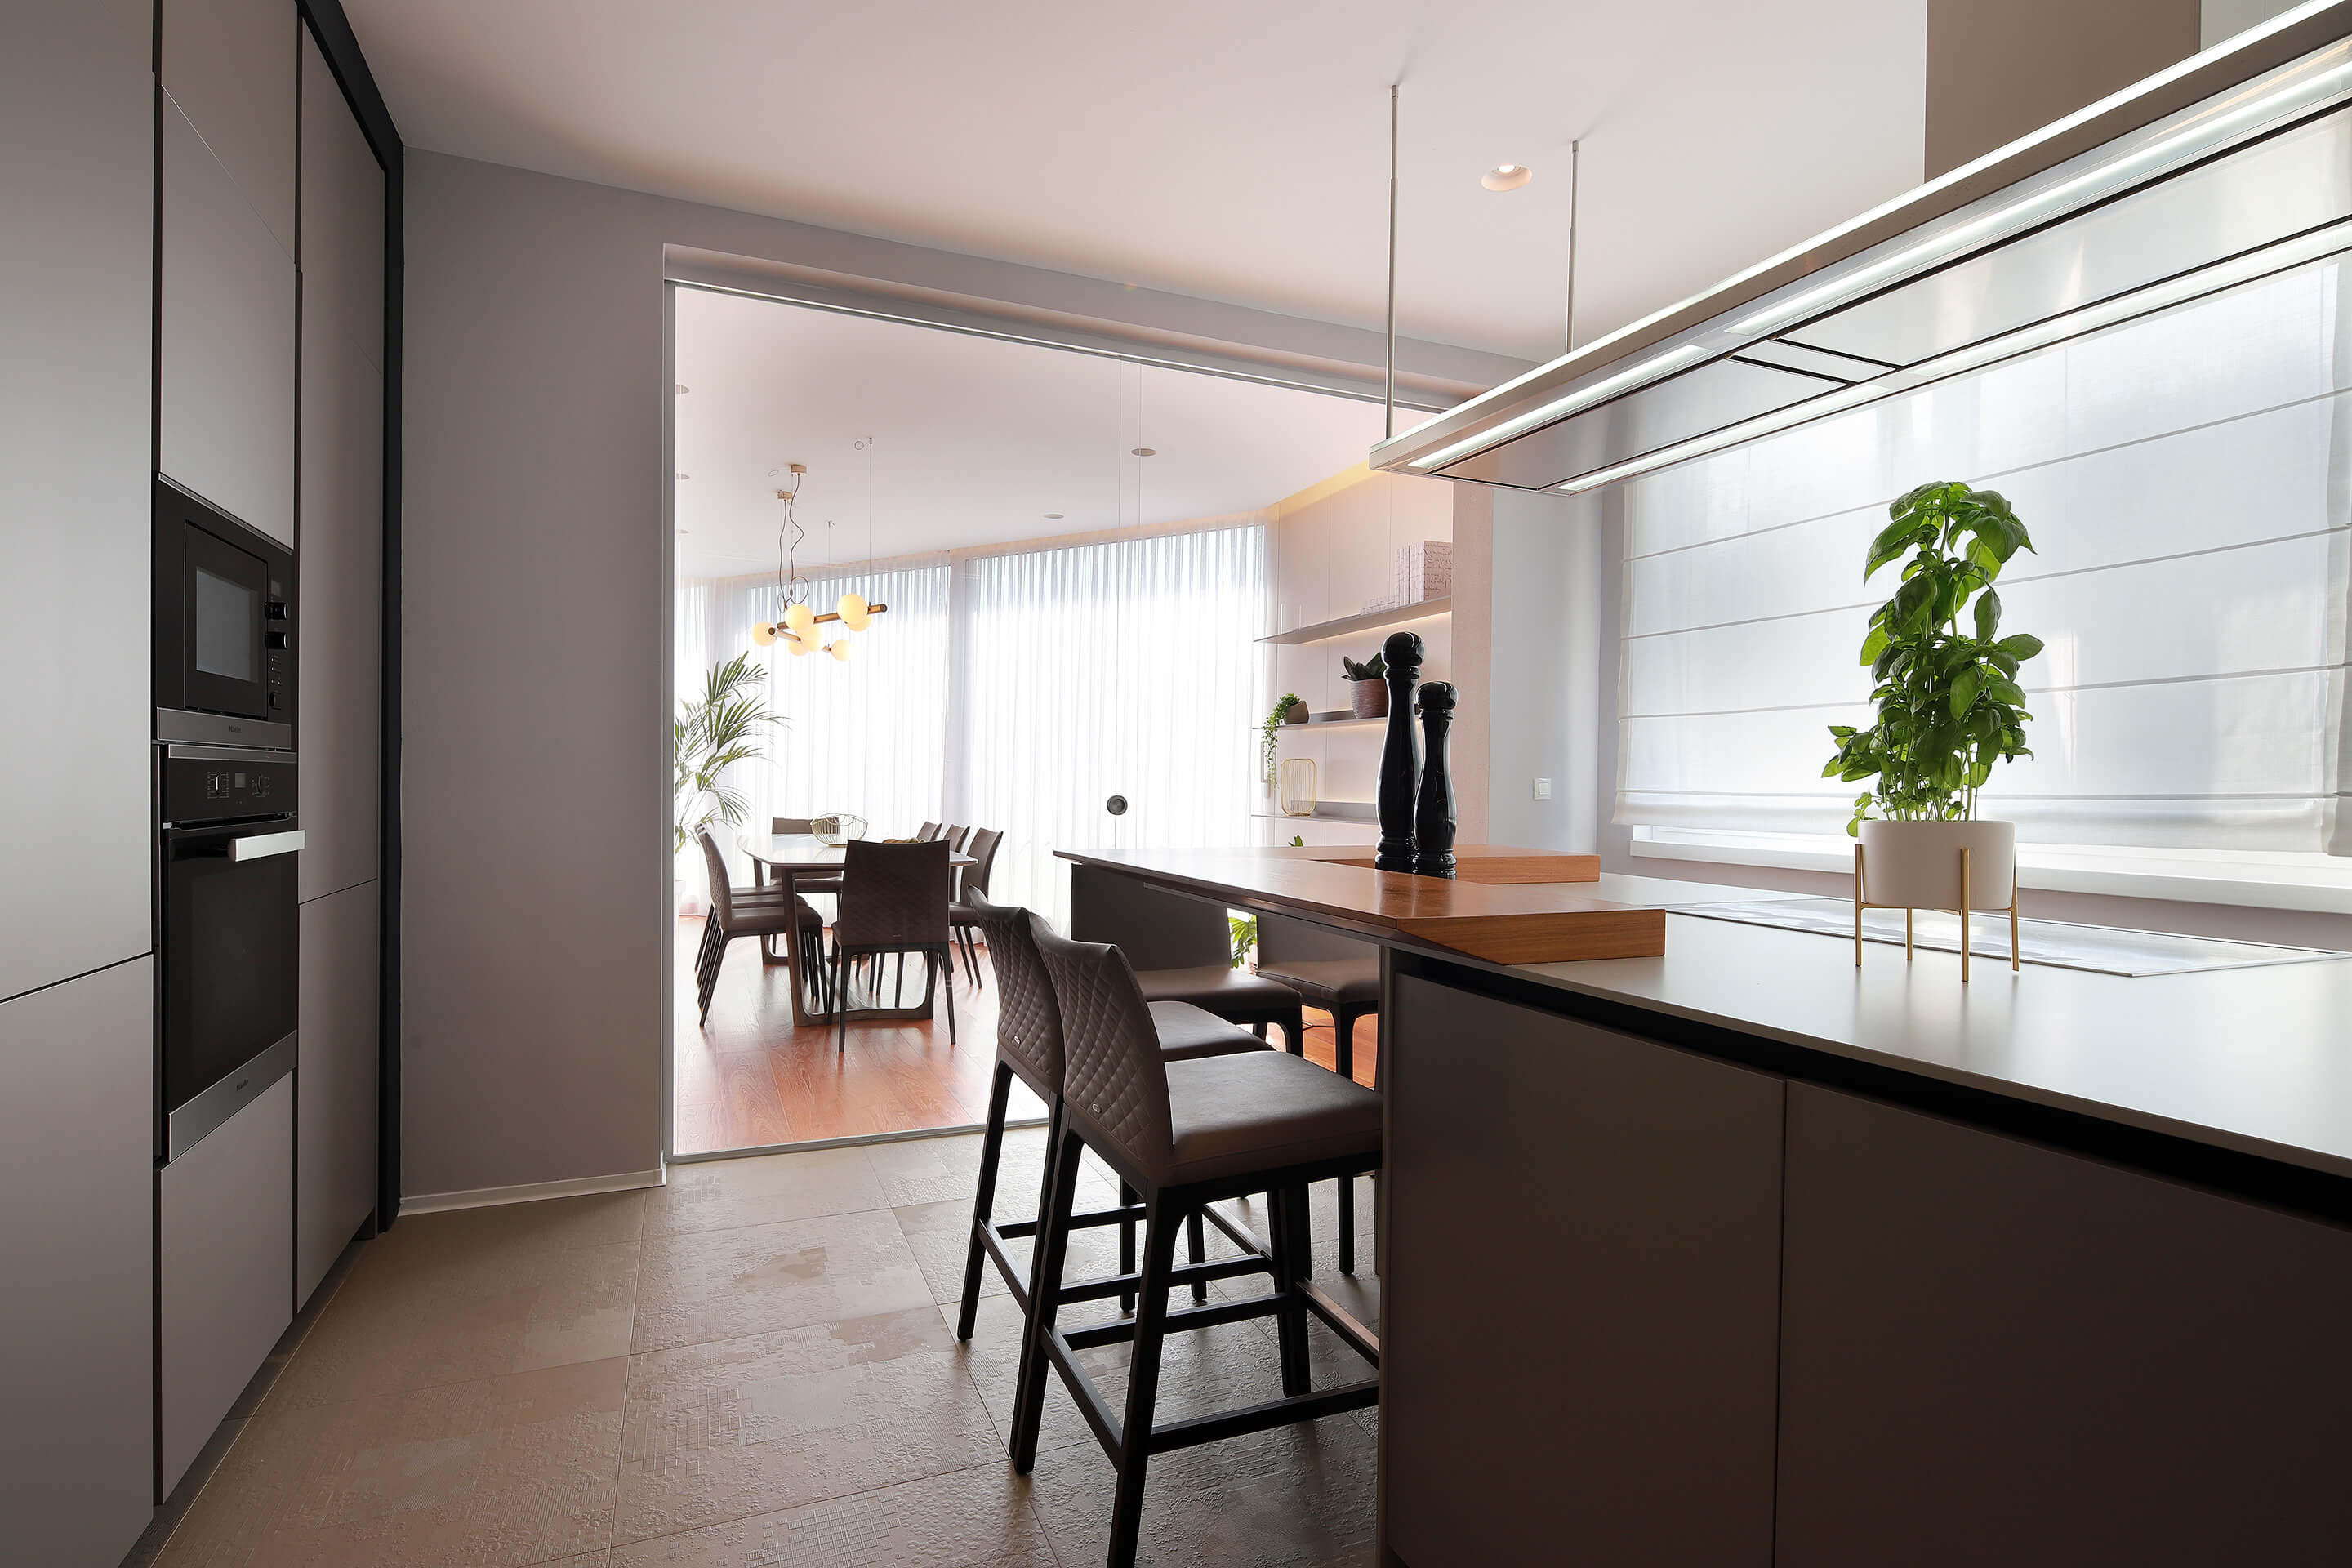 penthouse - kitchen - dining area - modern